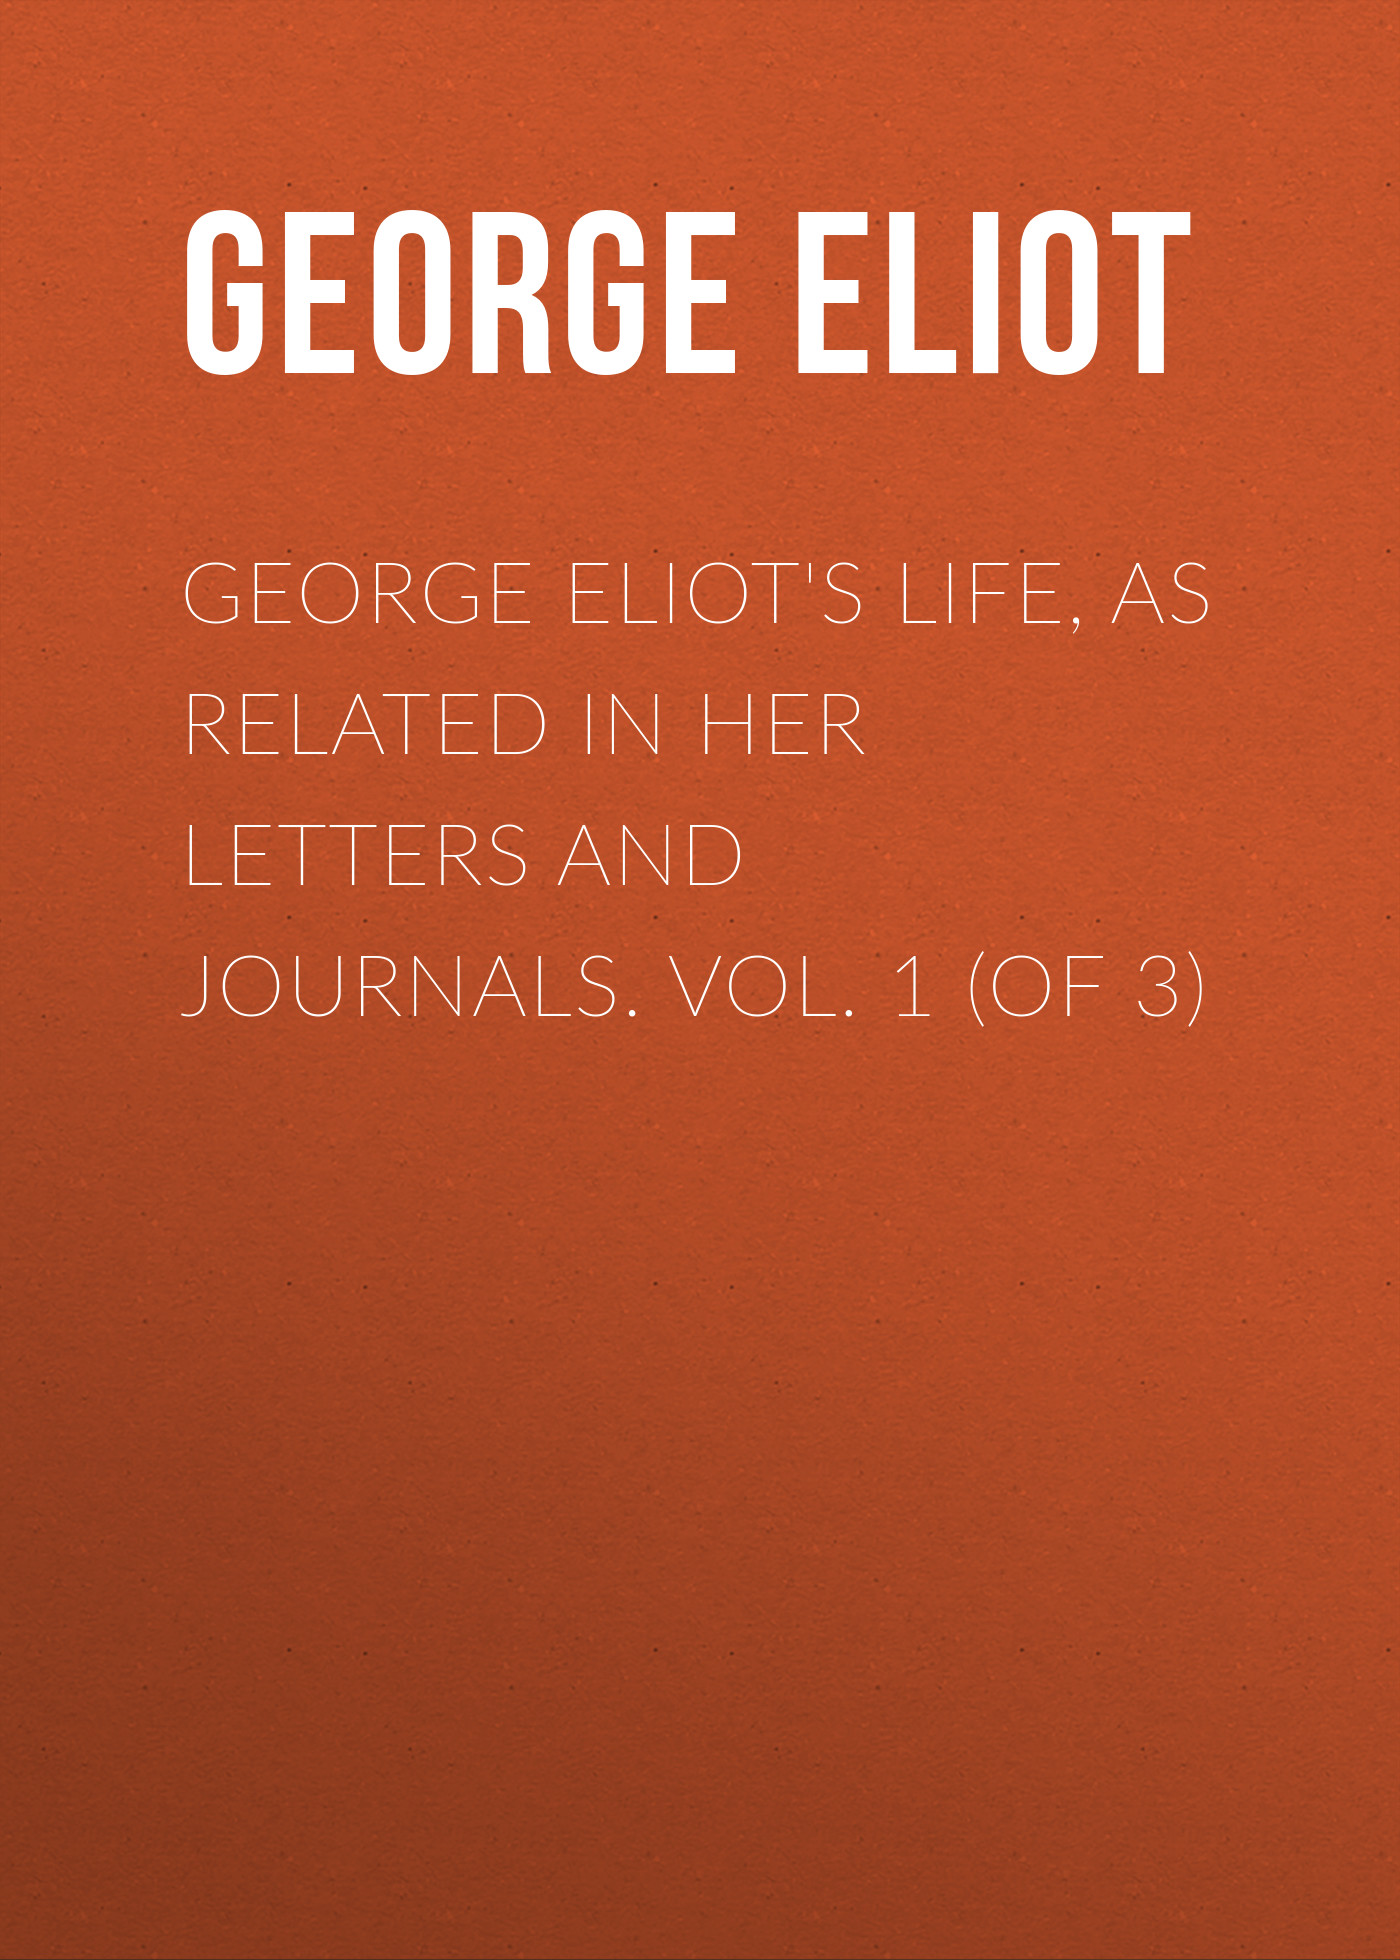 Джордж Элиот George Eliot's Life, as Related in Her Letters and Journals. Vol. 1 (of 3) джордж элиот brother jacob